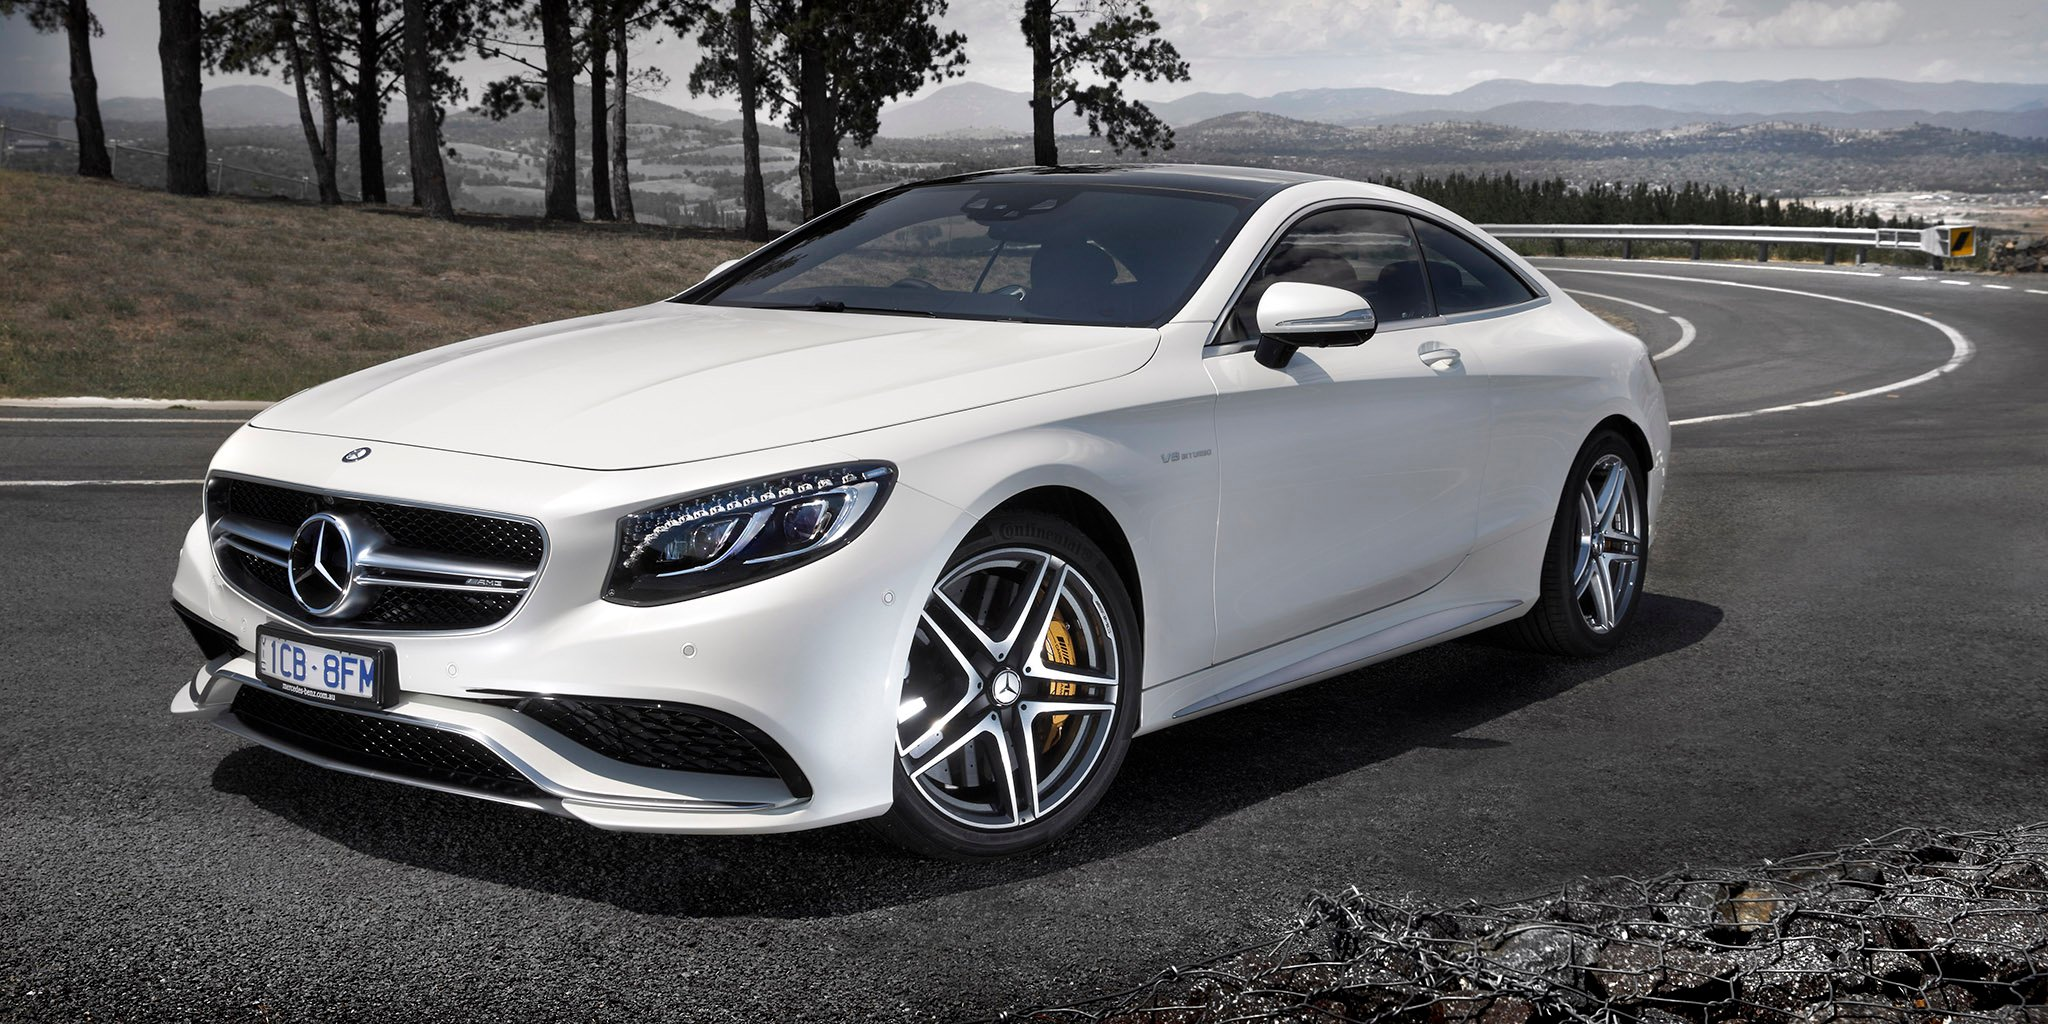 2015 mercedes benz s63 amg coupe review caradvice. Black Bedroom Furniture Sets. Home Design Ideas